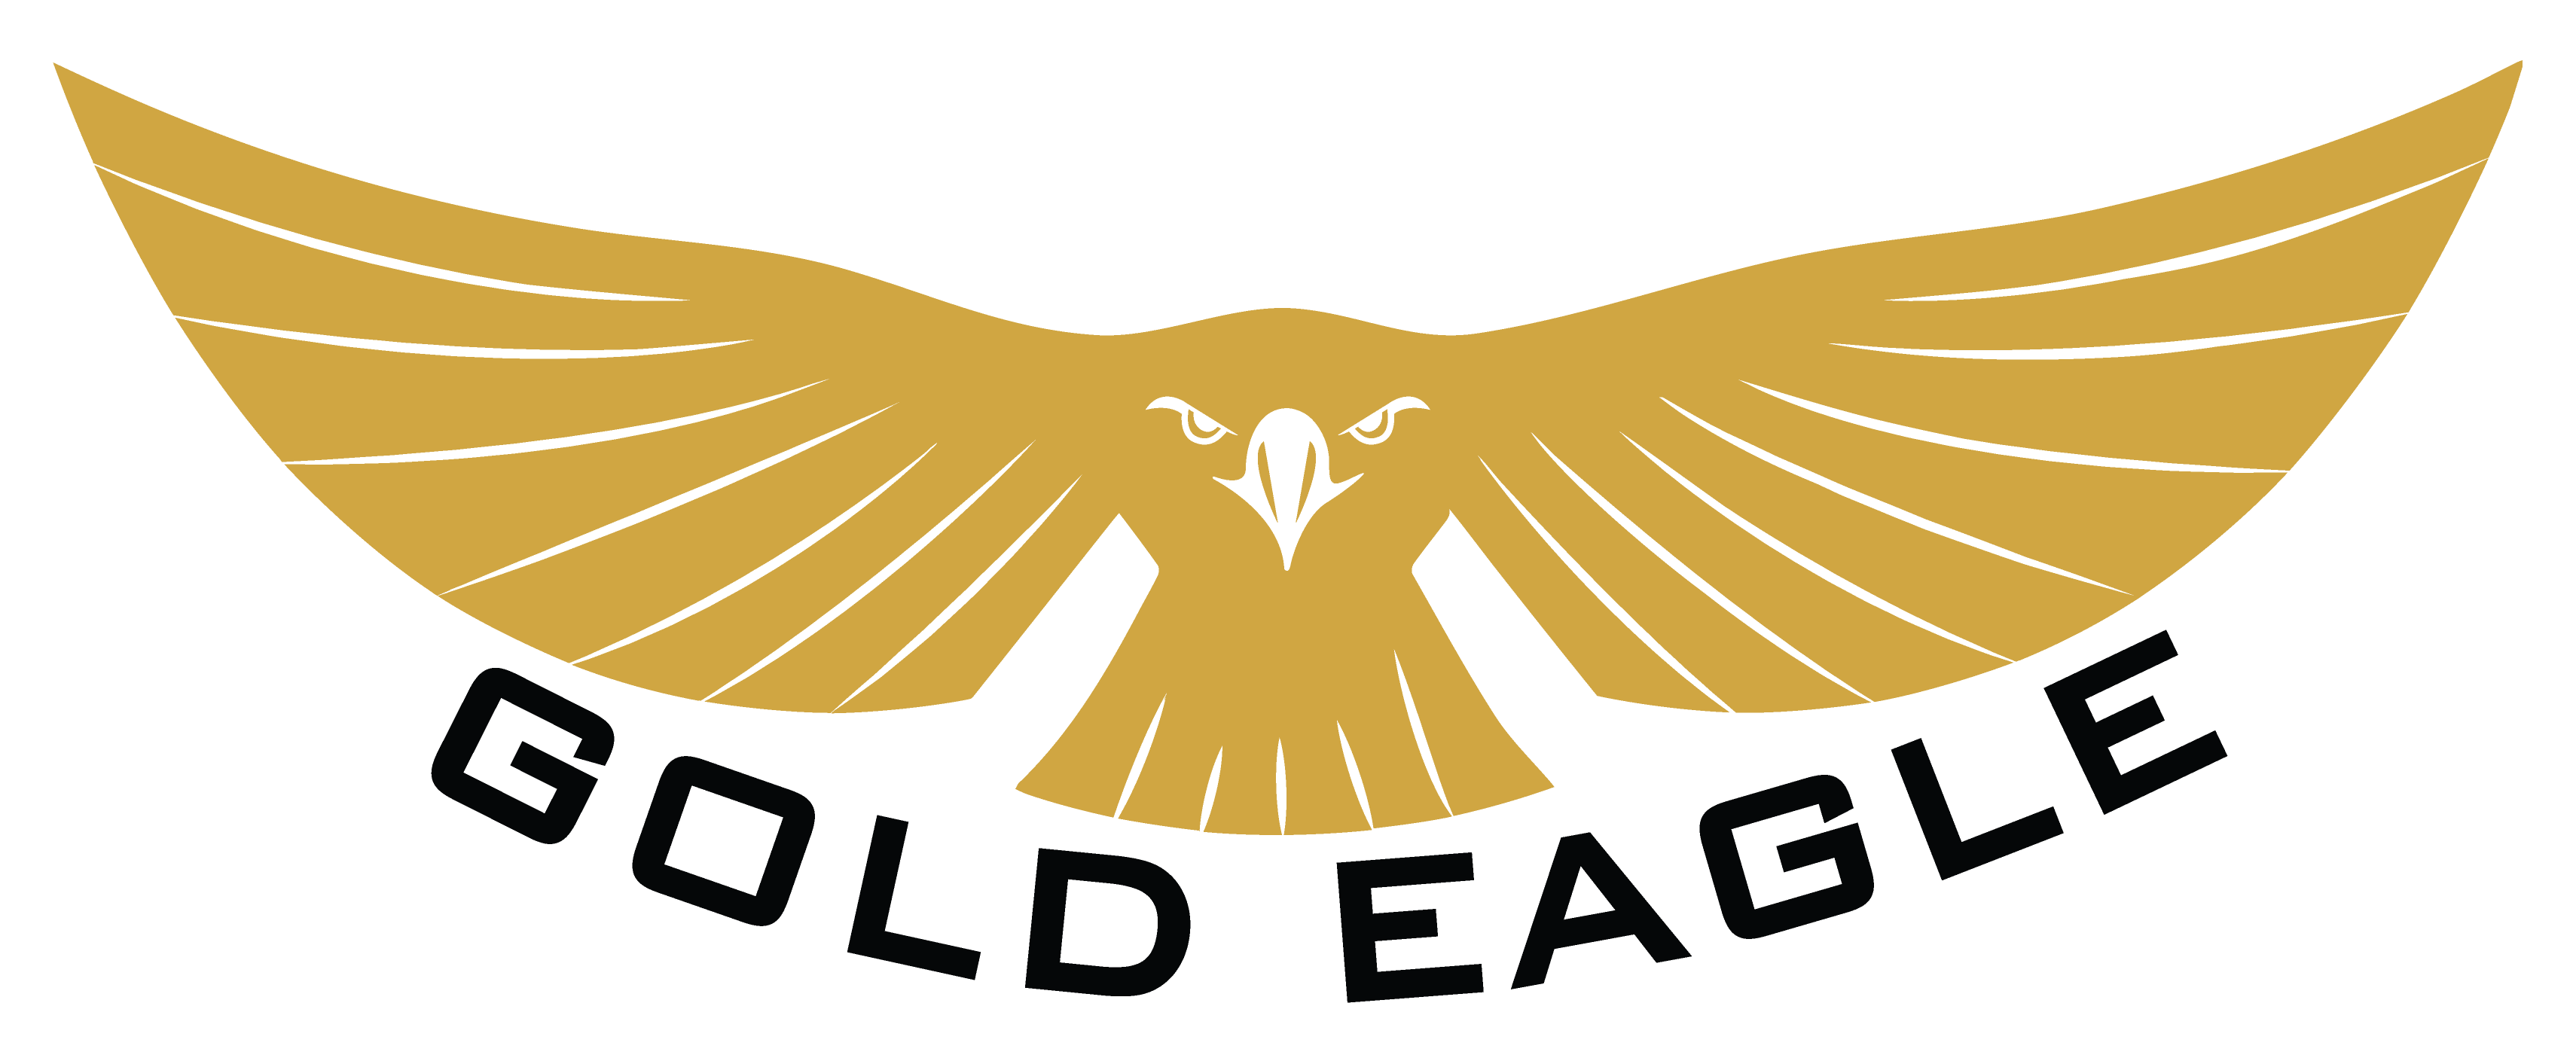 Project Gold Eagle logo